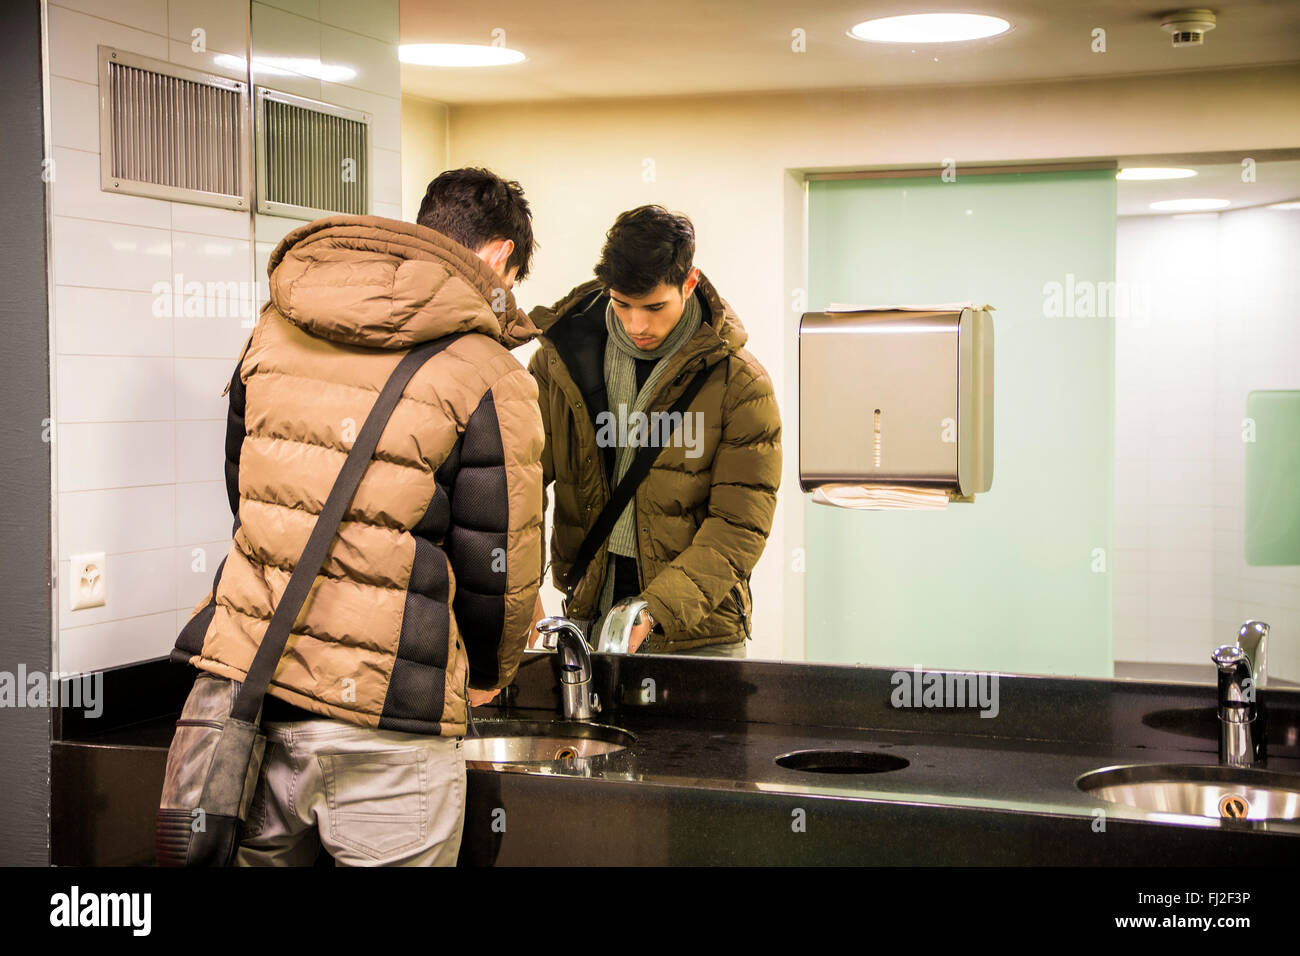 Reflection of young man washing hands in public bathroom - Stock Image